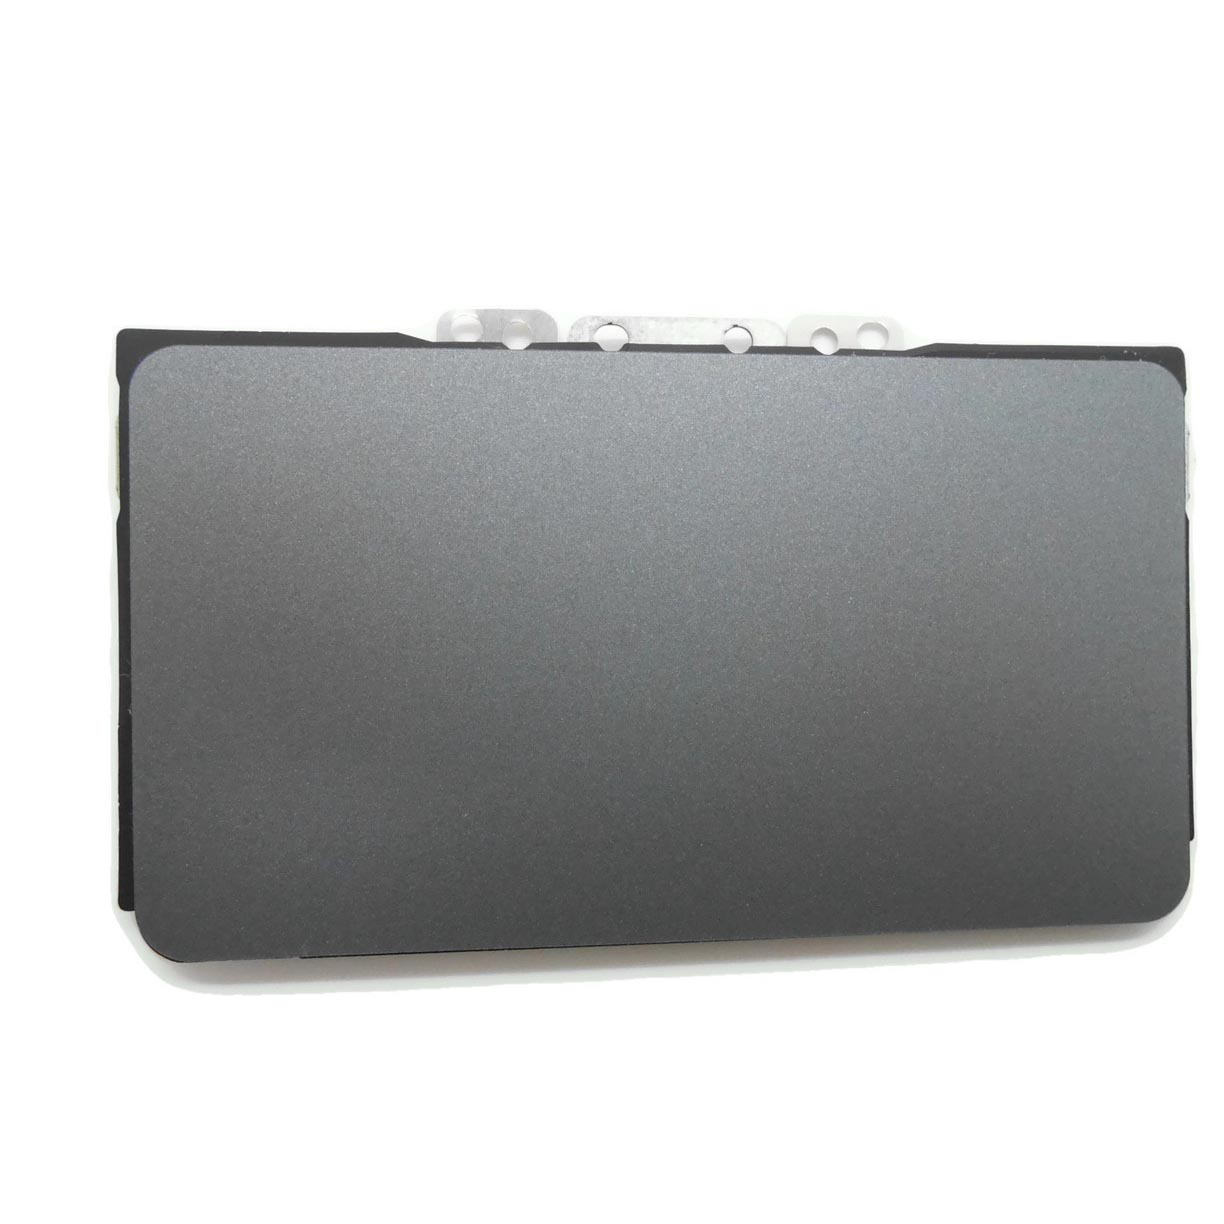 Placa e Touchpad  Notebook Acer Aspire Chromebook C710 V5-171 PN:am0r0000300 - Retirado